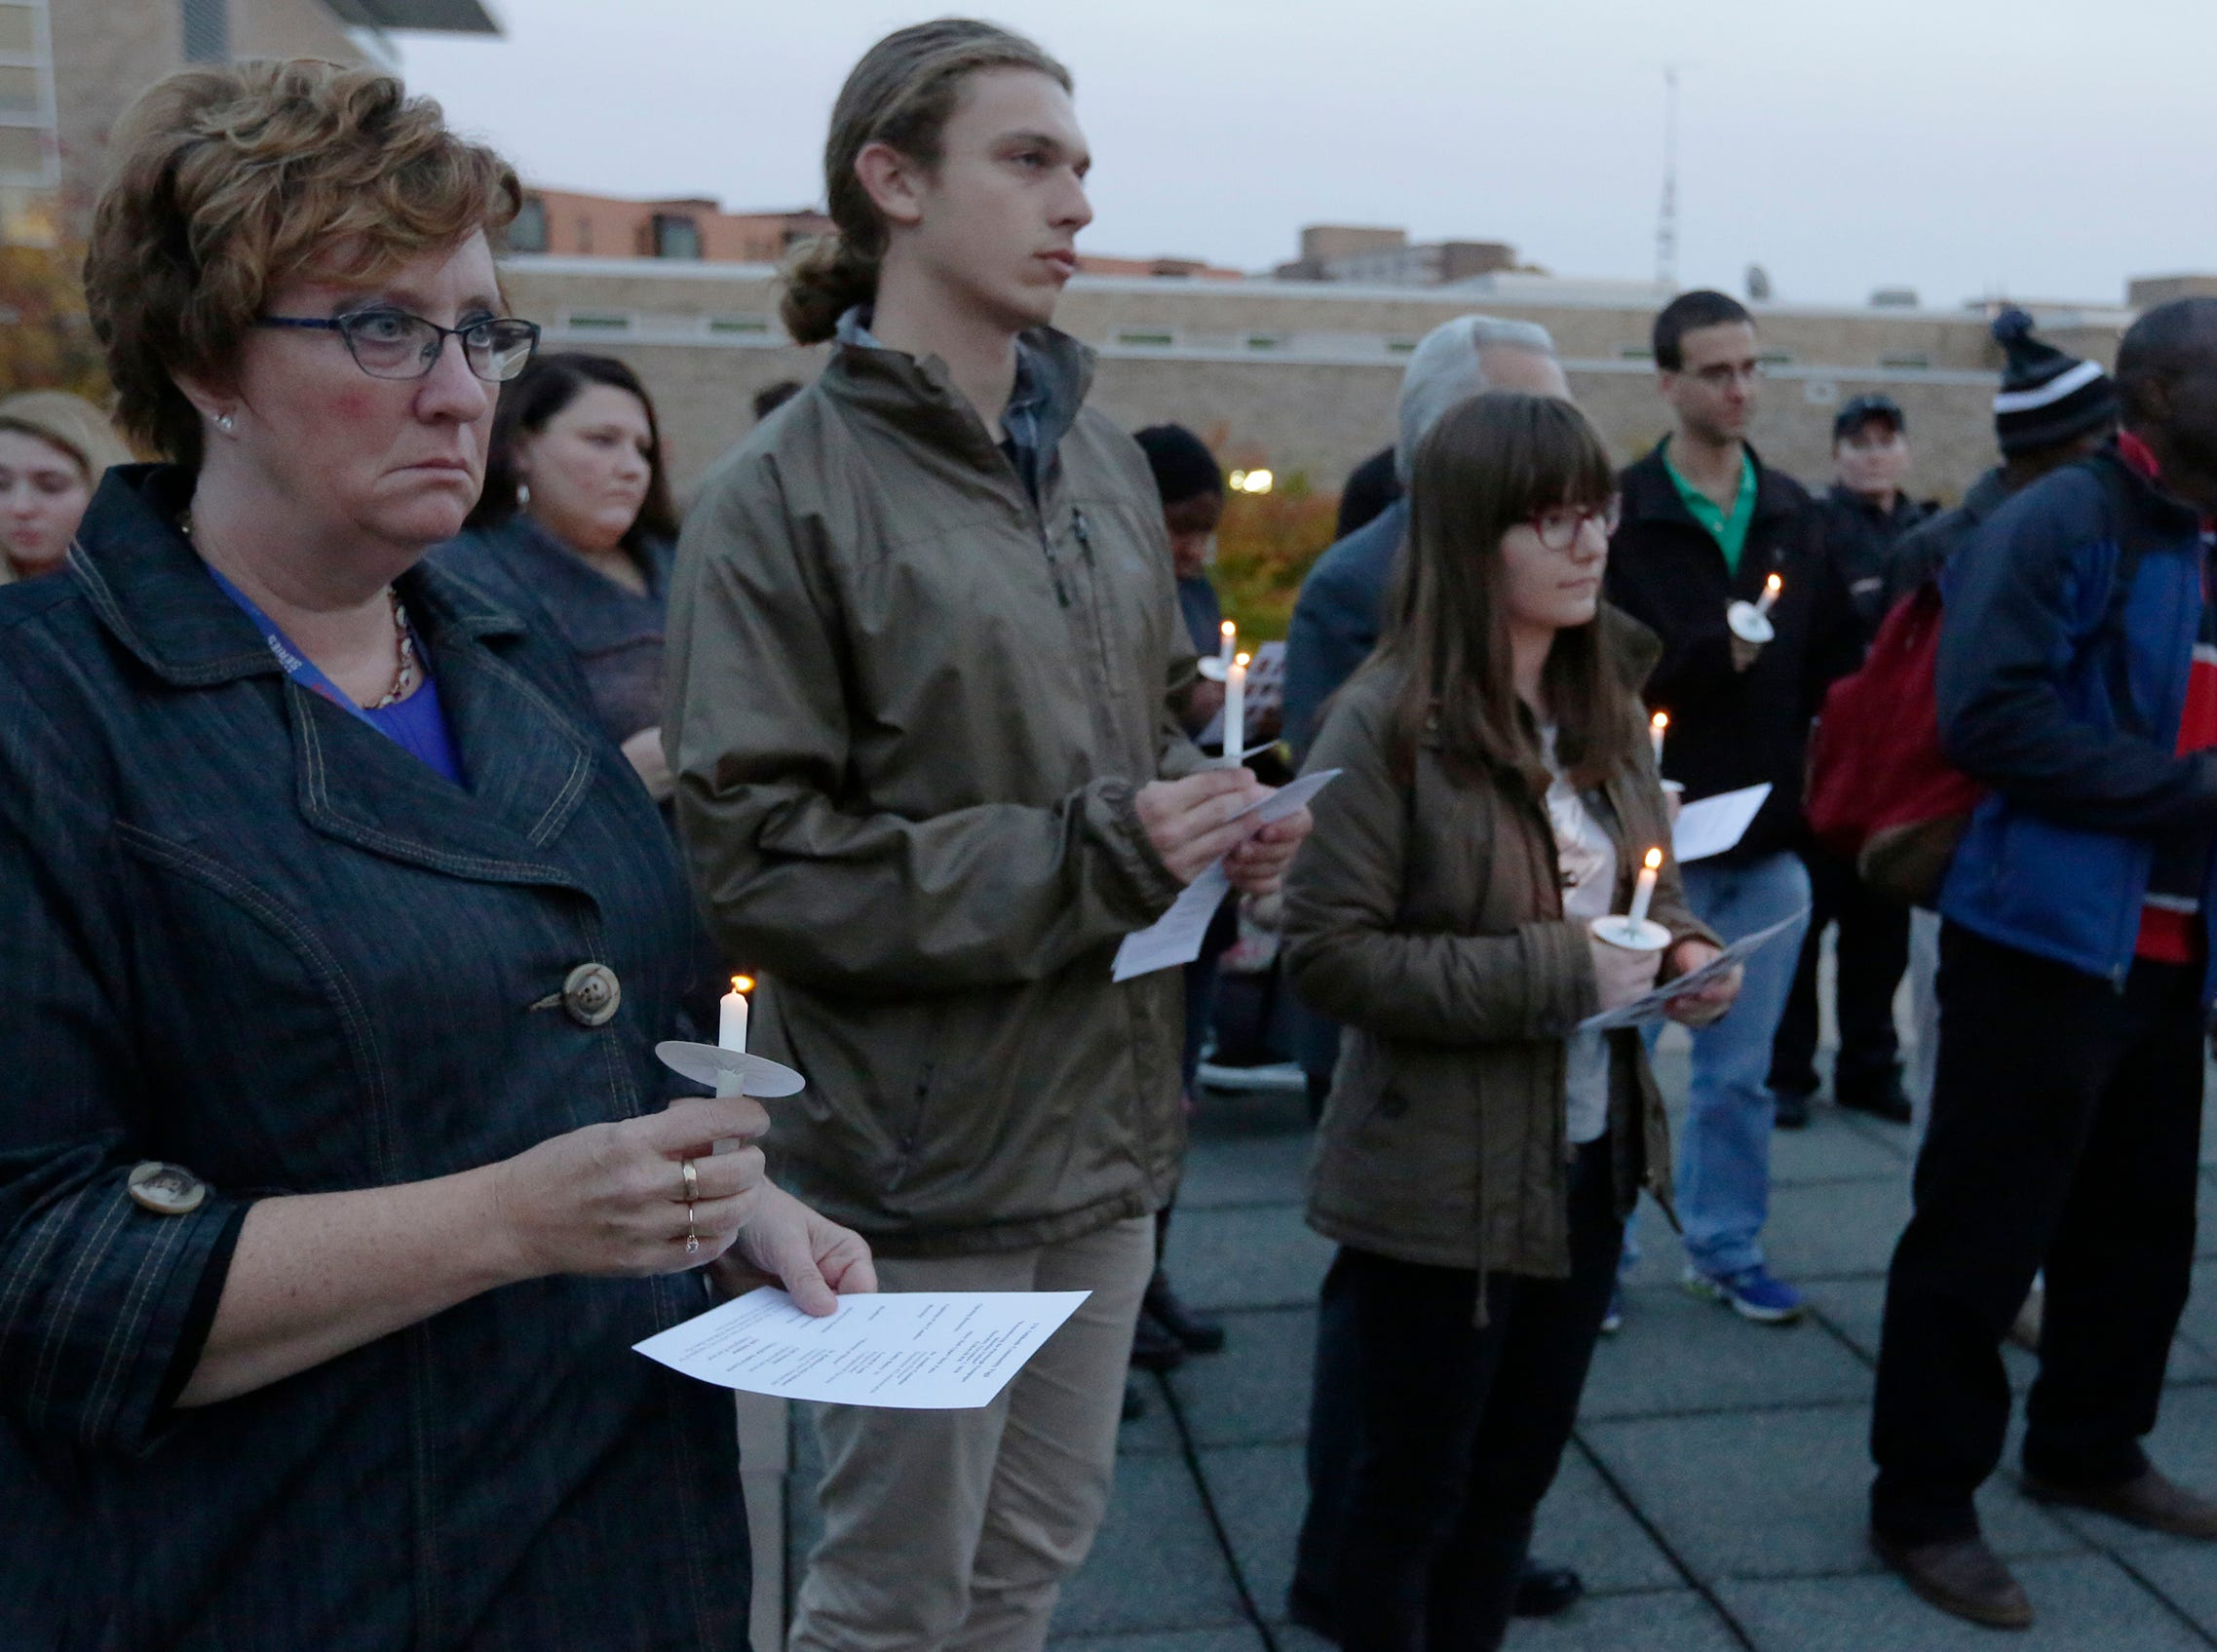 A candlelight vigil was held on the upper deck of UW-Oshkosh's Albee Hall Thursday, November 1, 2018, to come together and remember those killed at the Tree of Life Congregation in the Squirrel Hill neighborhood of Pittsburgh, Pa. Eleven people were killed and six injured in the attack.